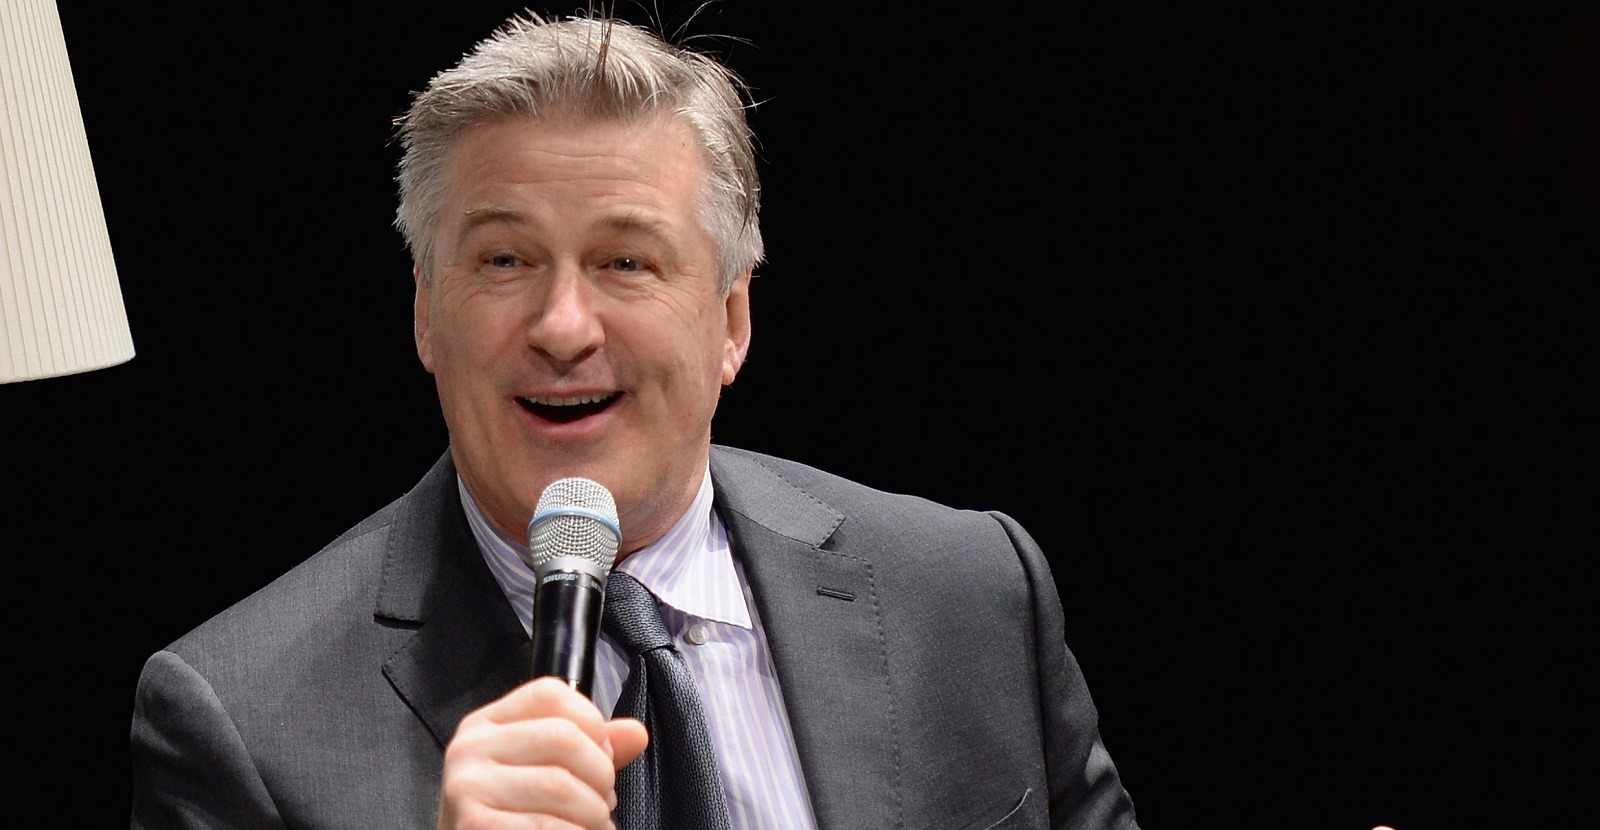 Alec Baldwin speaks at the Dacor Modernist Collection Launch at last month in New York City.  (Photo by Andrew Toth/Getty Images for Dacor)